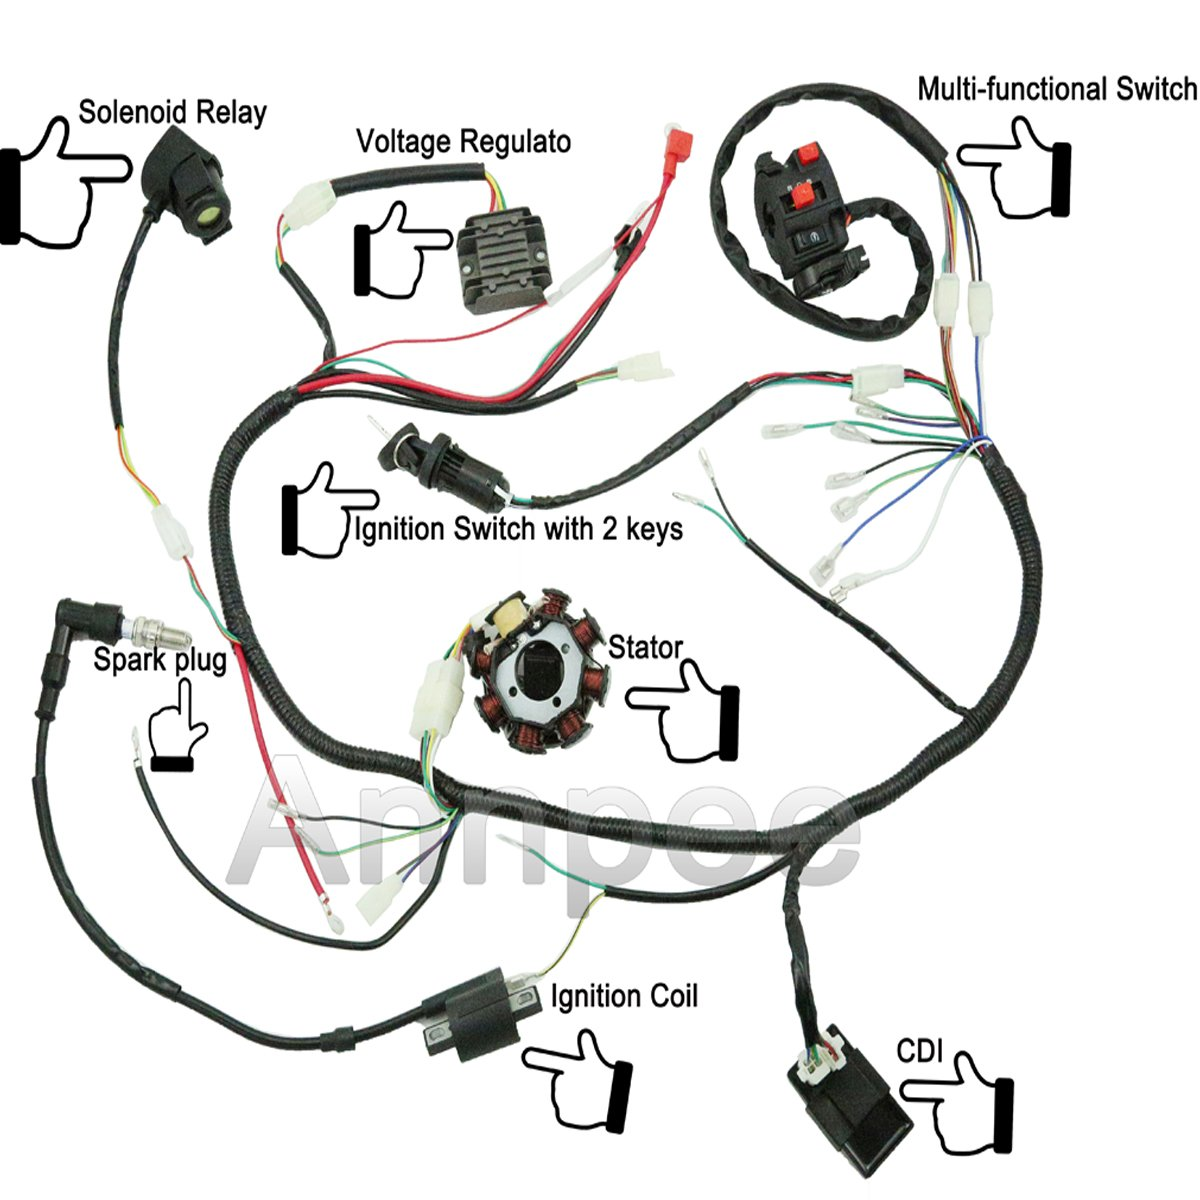 amazon jikan annpee plete wiring harness kit wire loom LED Turn Signal Wiring Diagram amazon jikan annpee plete wiring harness kit wire loom electrics stator coil cdi for atv quad 4 four wheelers 150cc 200cc 250cc go kart dirt pit